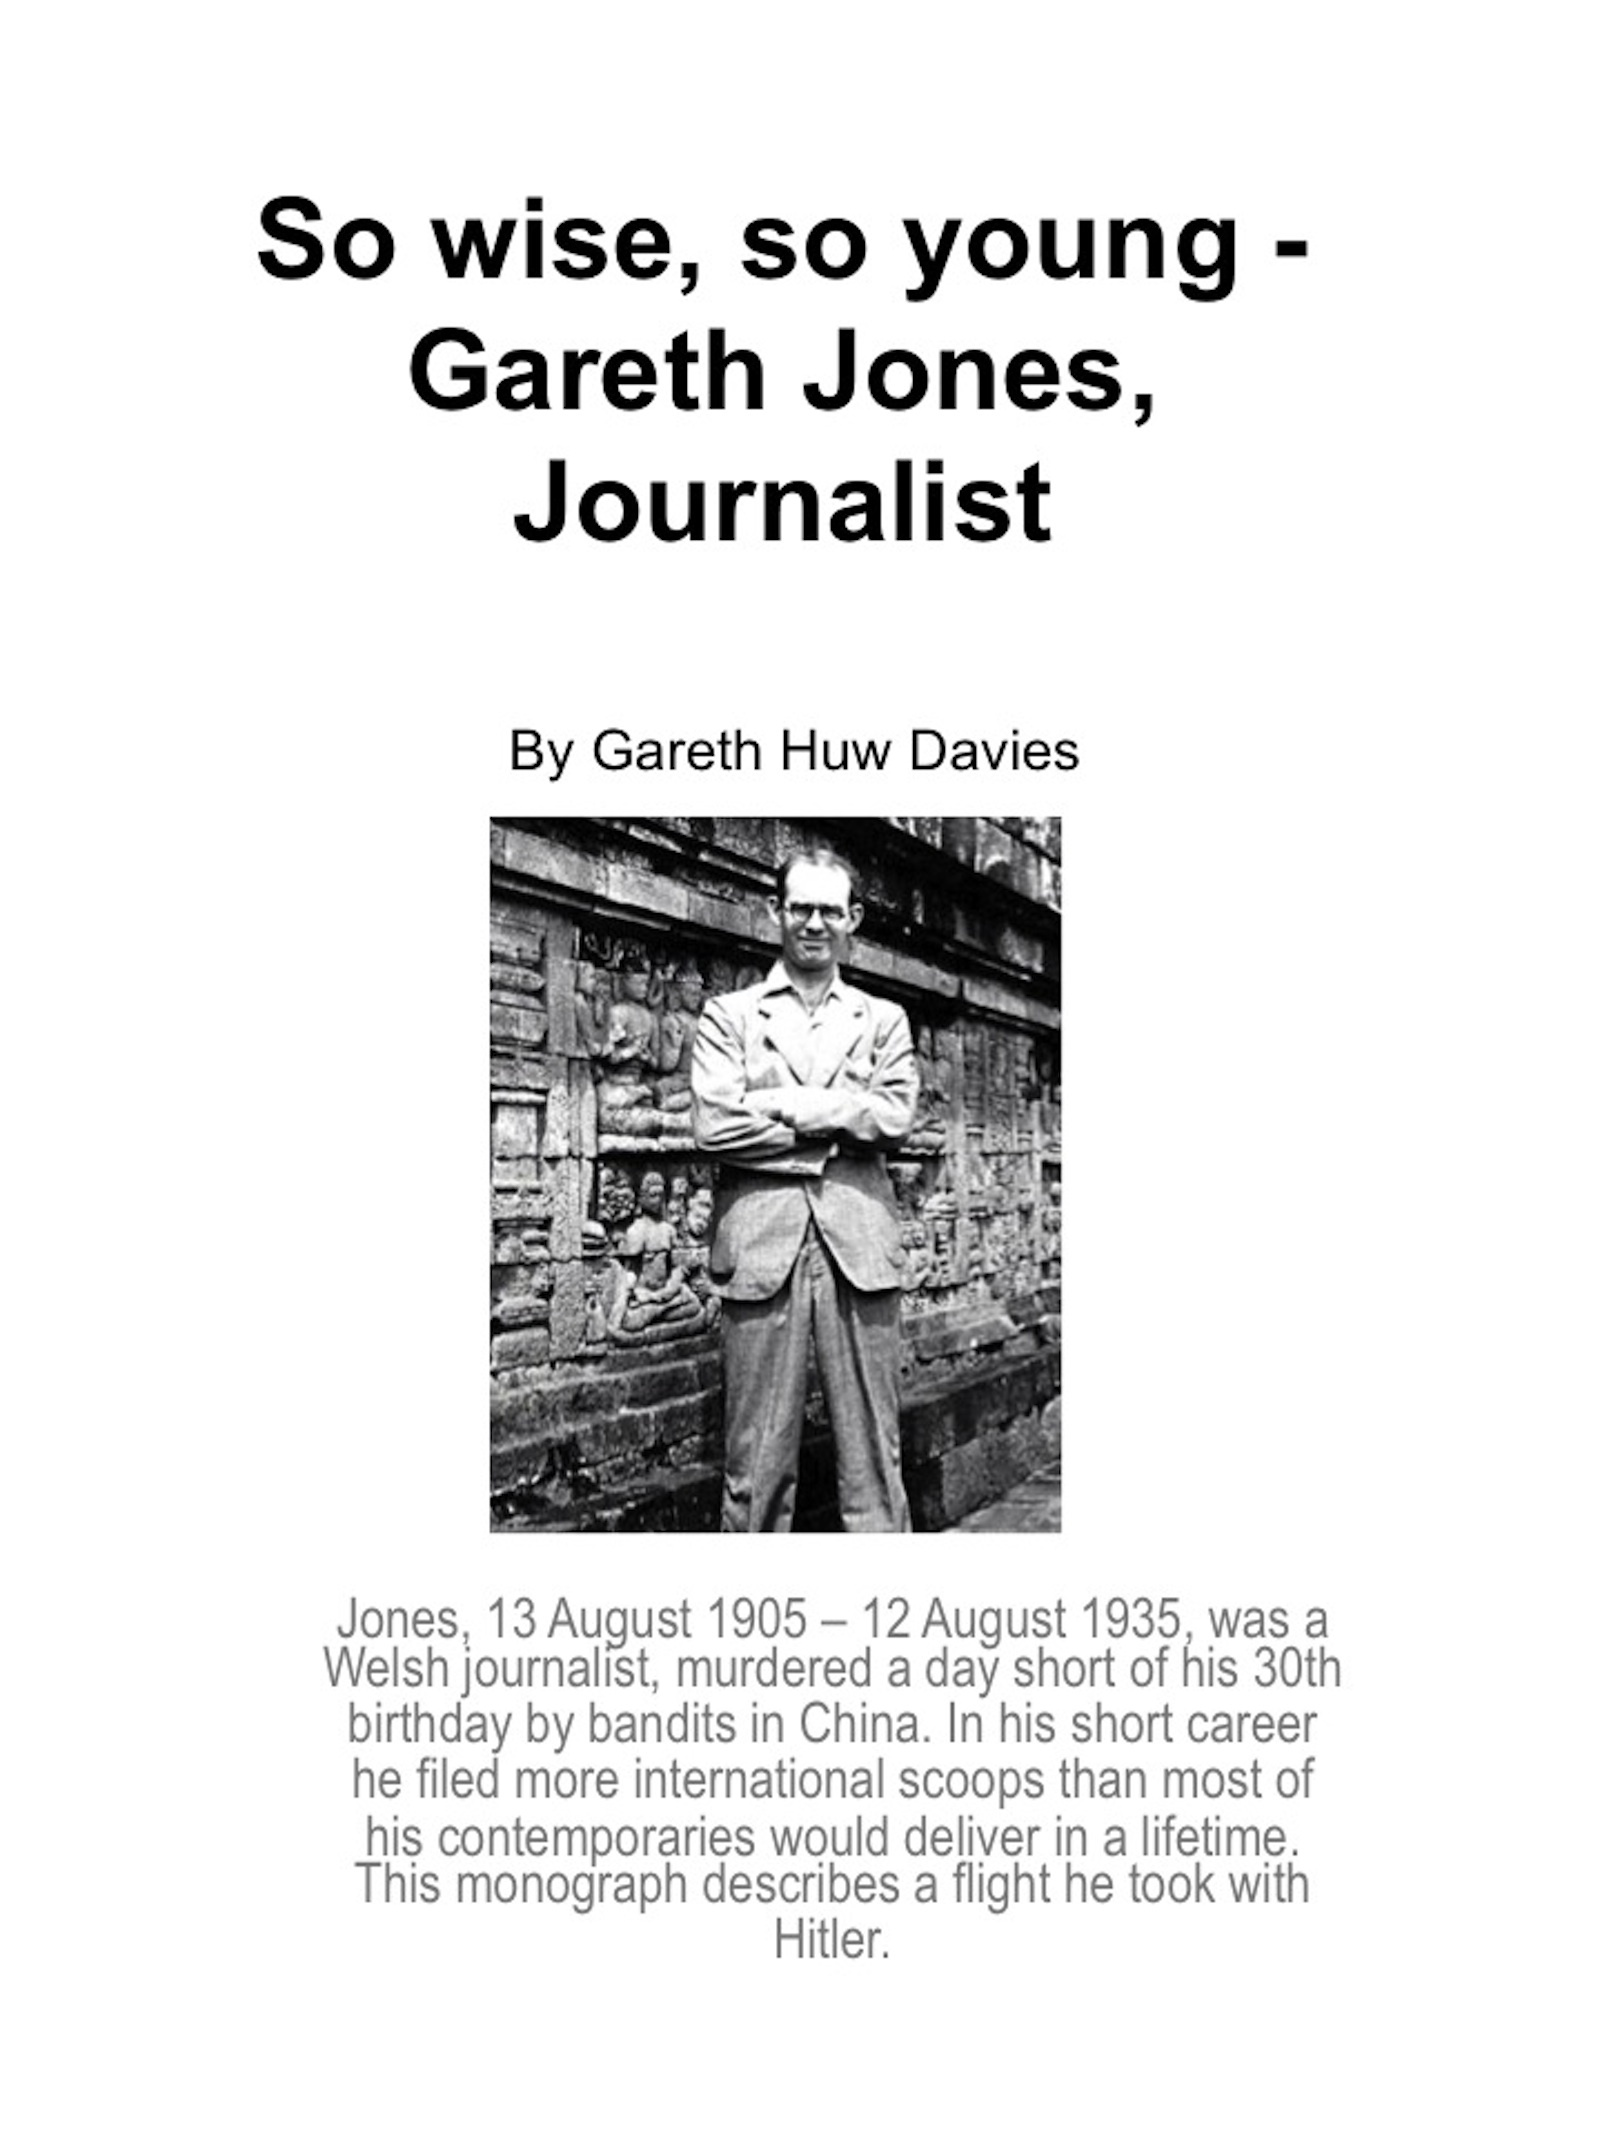 So Wise, So Young: Gareth Jones, Journalist.